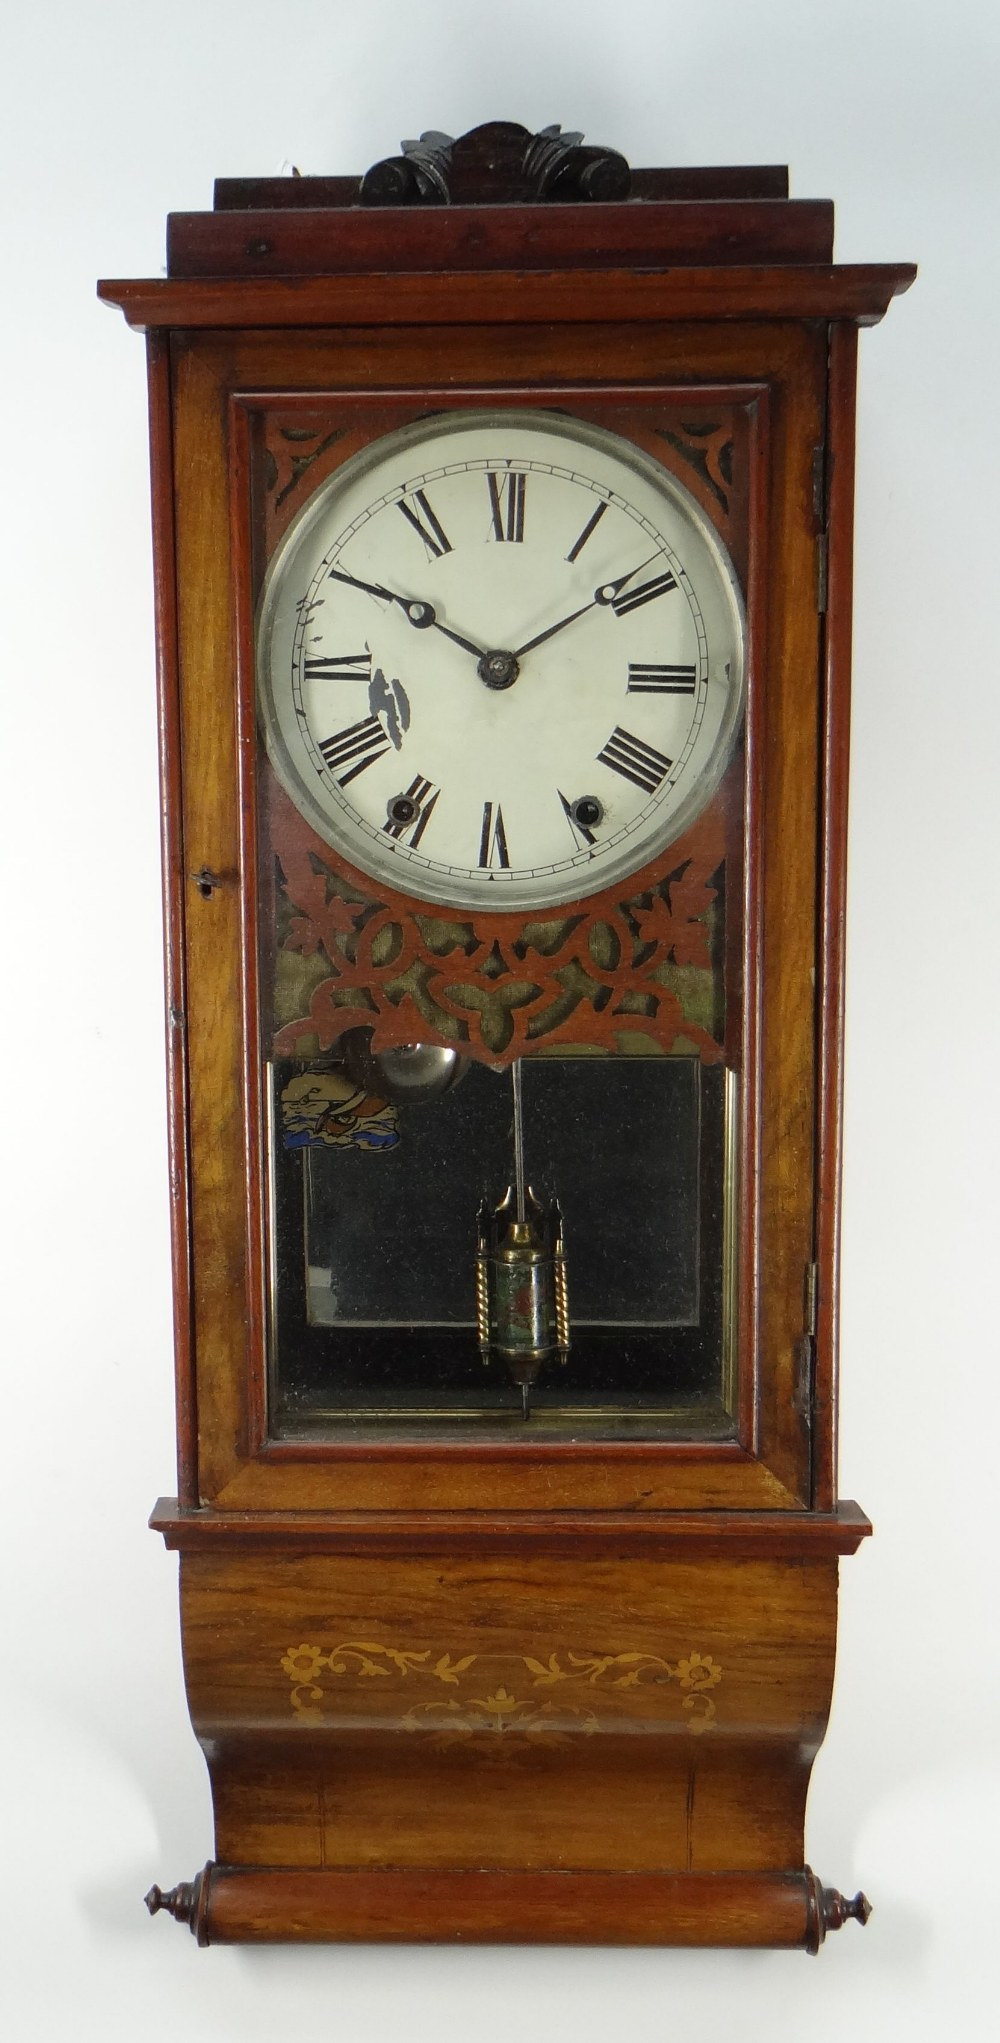 19TH CENTURY AMERICAN WALNUT MARQUETRY DROP DIAL WALL CLOCK, painted Roman dial and brass bobbin